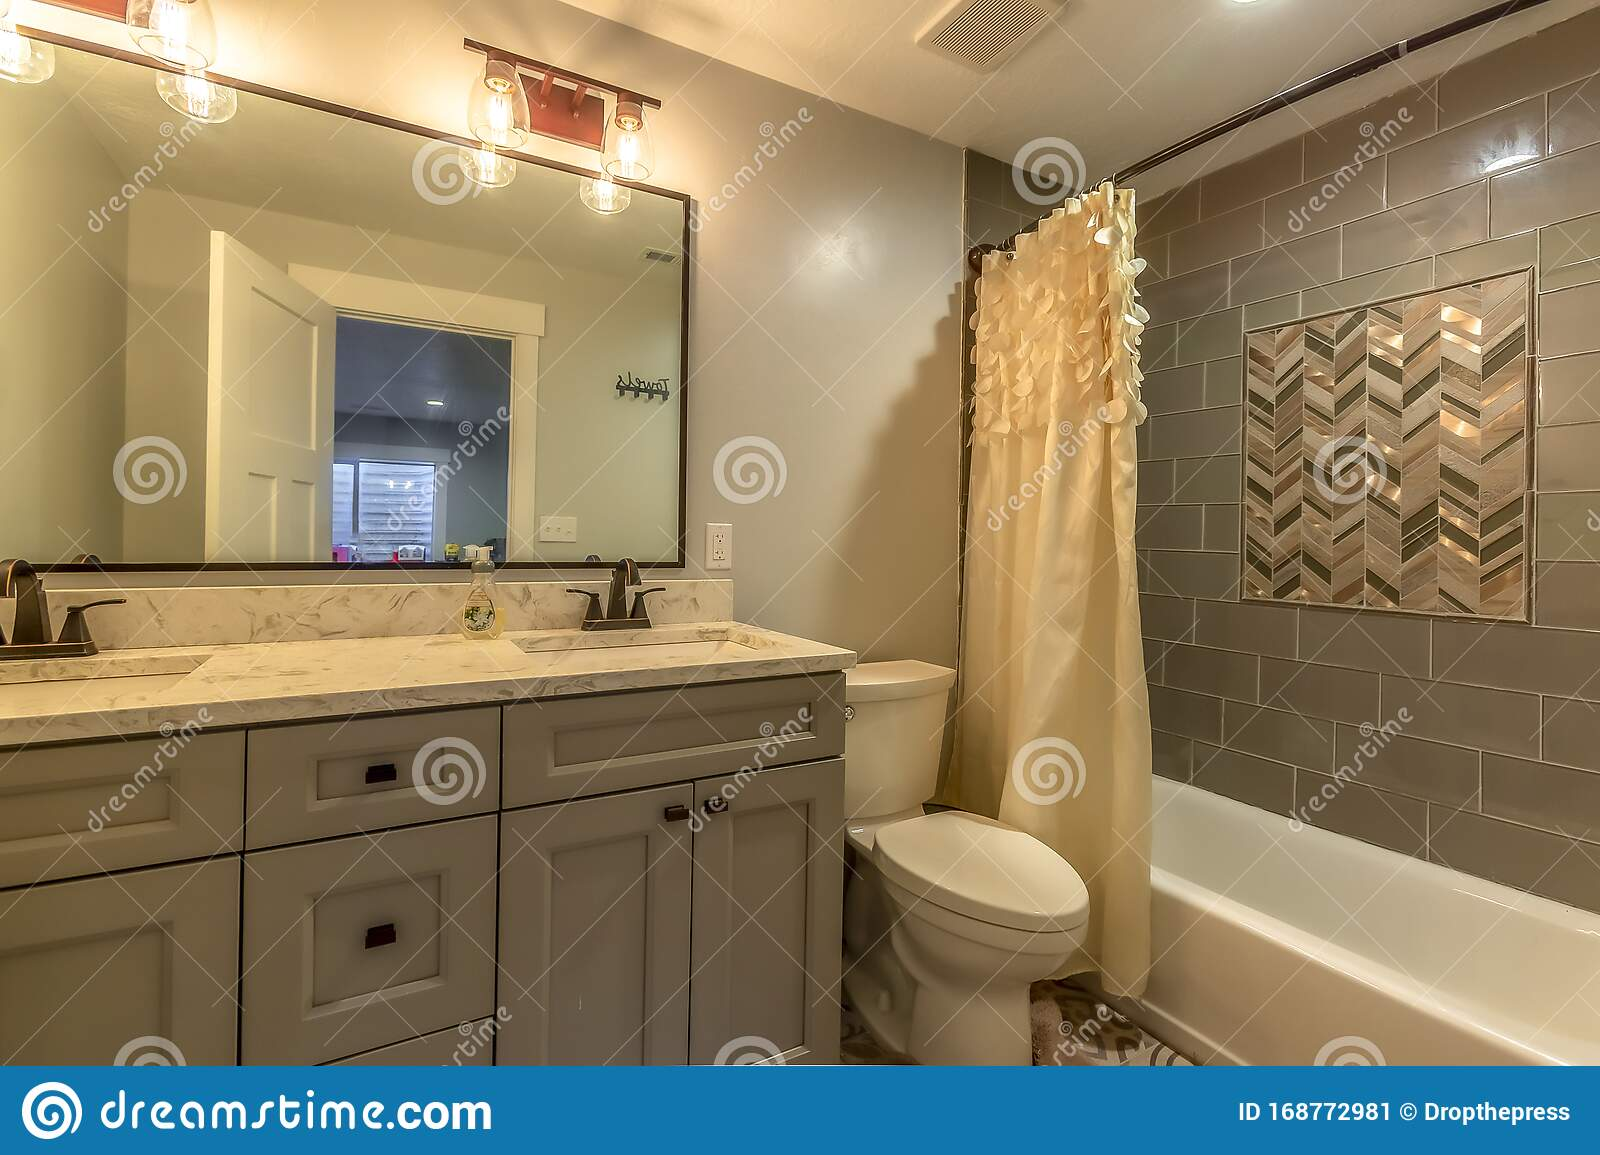 Bathroom With Vanity And Toilet Against White Wall And ...